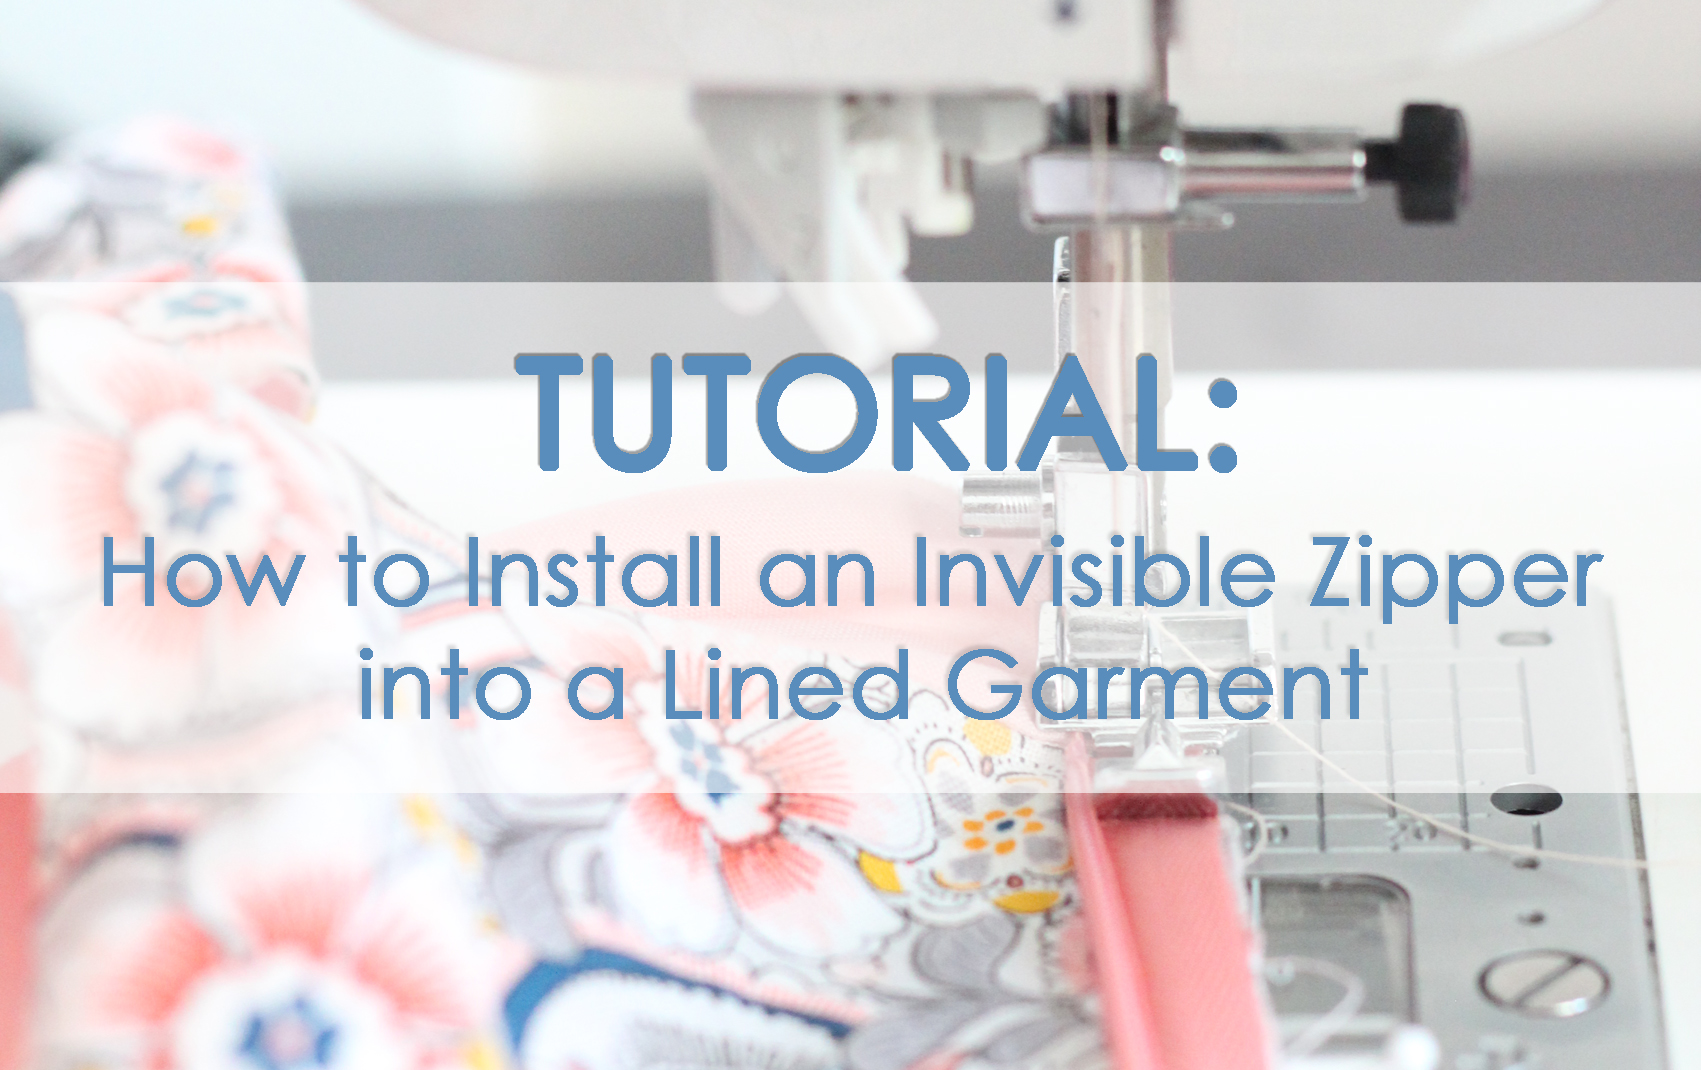 TUTORIAL: How to Install an Invisible Zipper in a Lined Garment by Candice Ayala